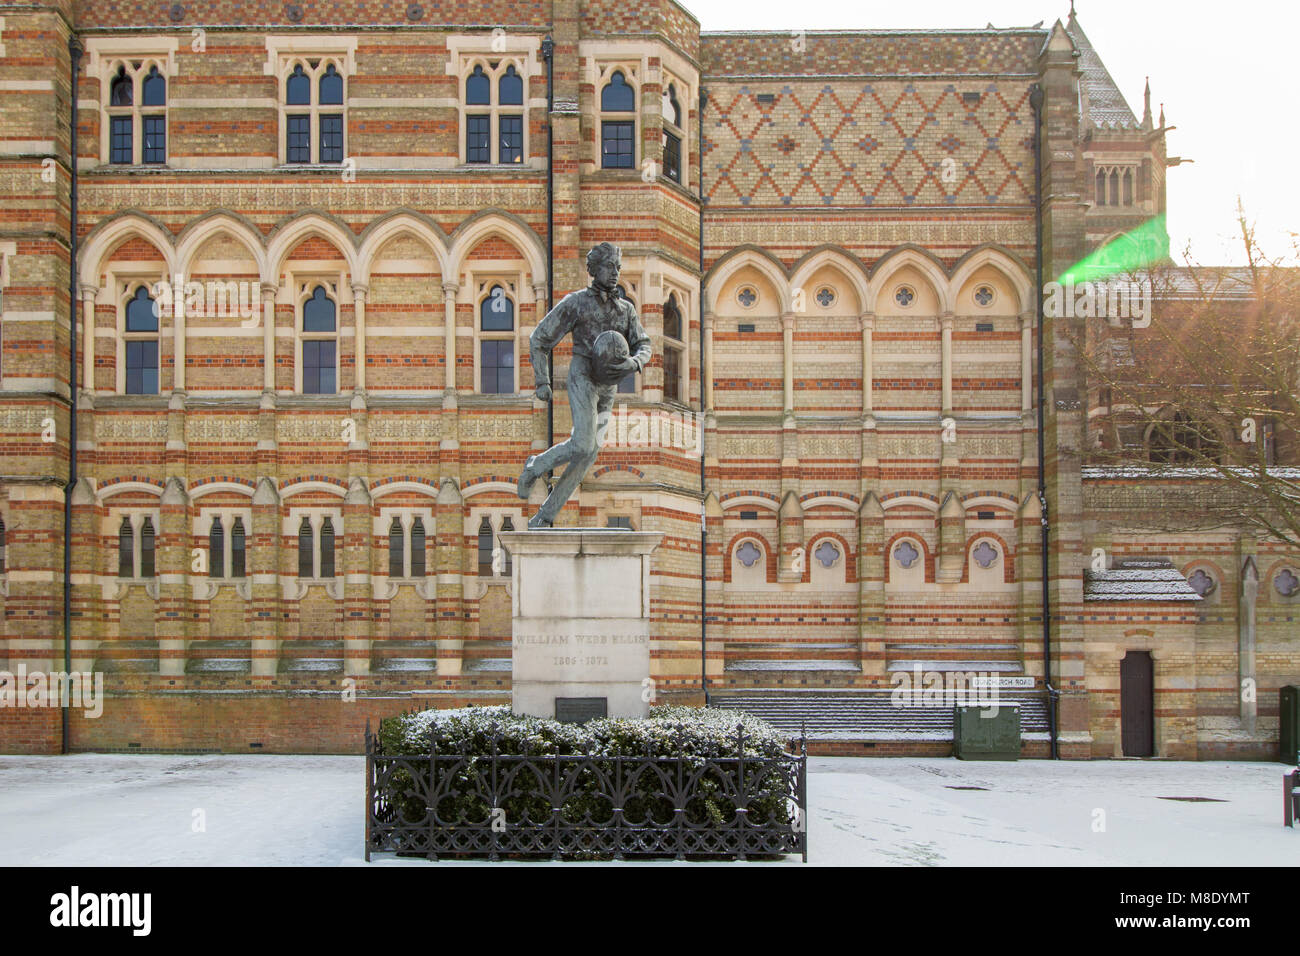 The statue of a young William Webb Ellis who invented Rugby outside Rugby School in the town centre of Rugby. - Stock Image